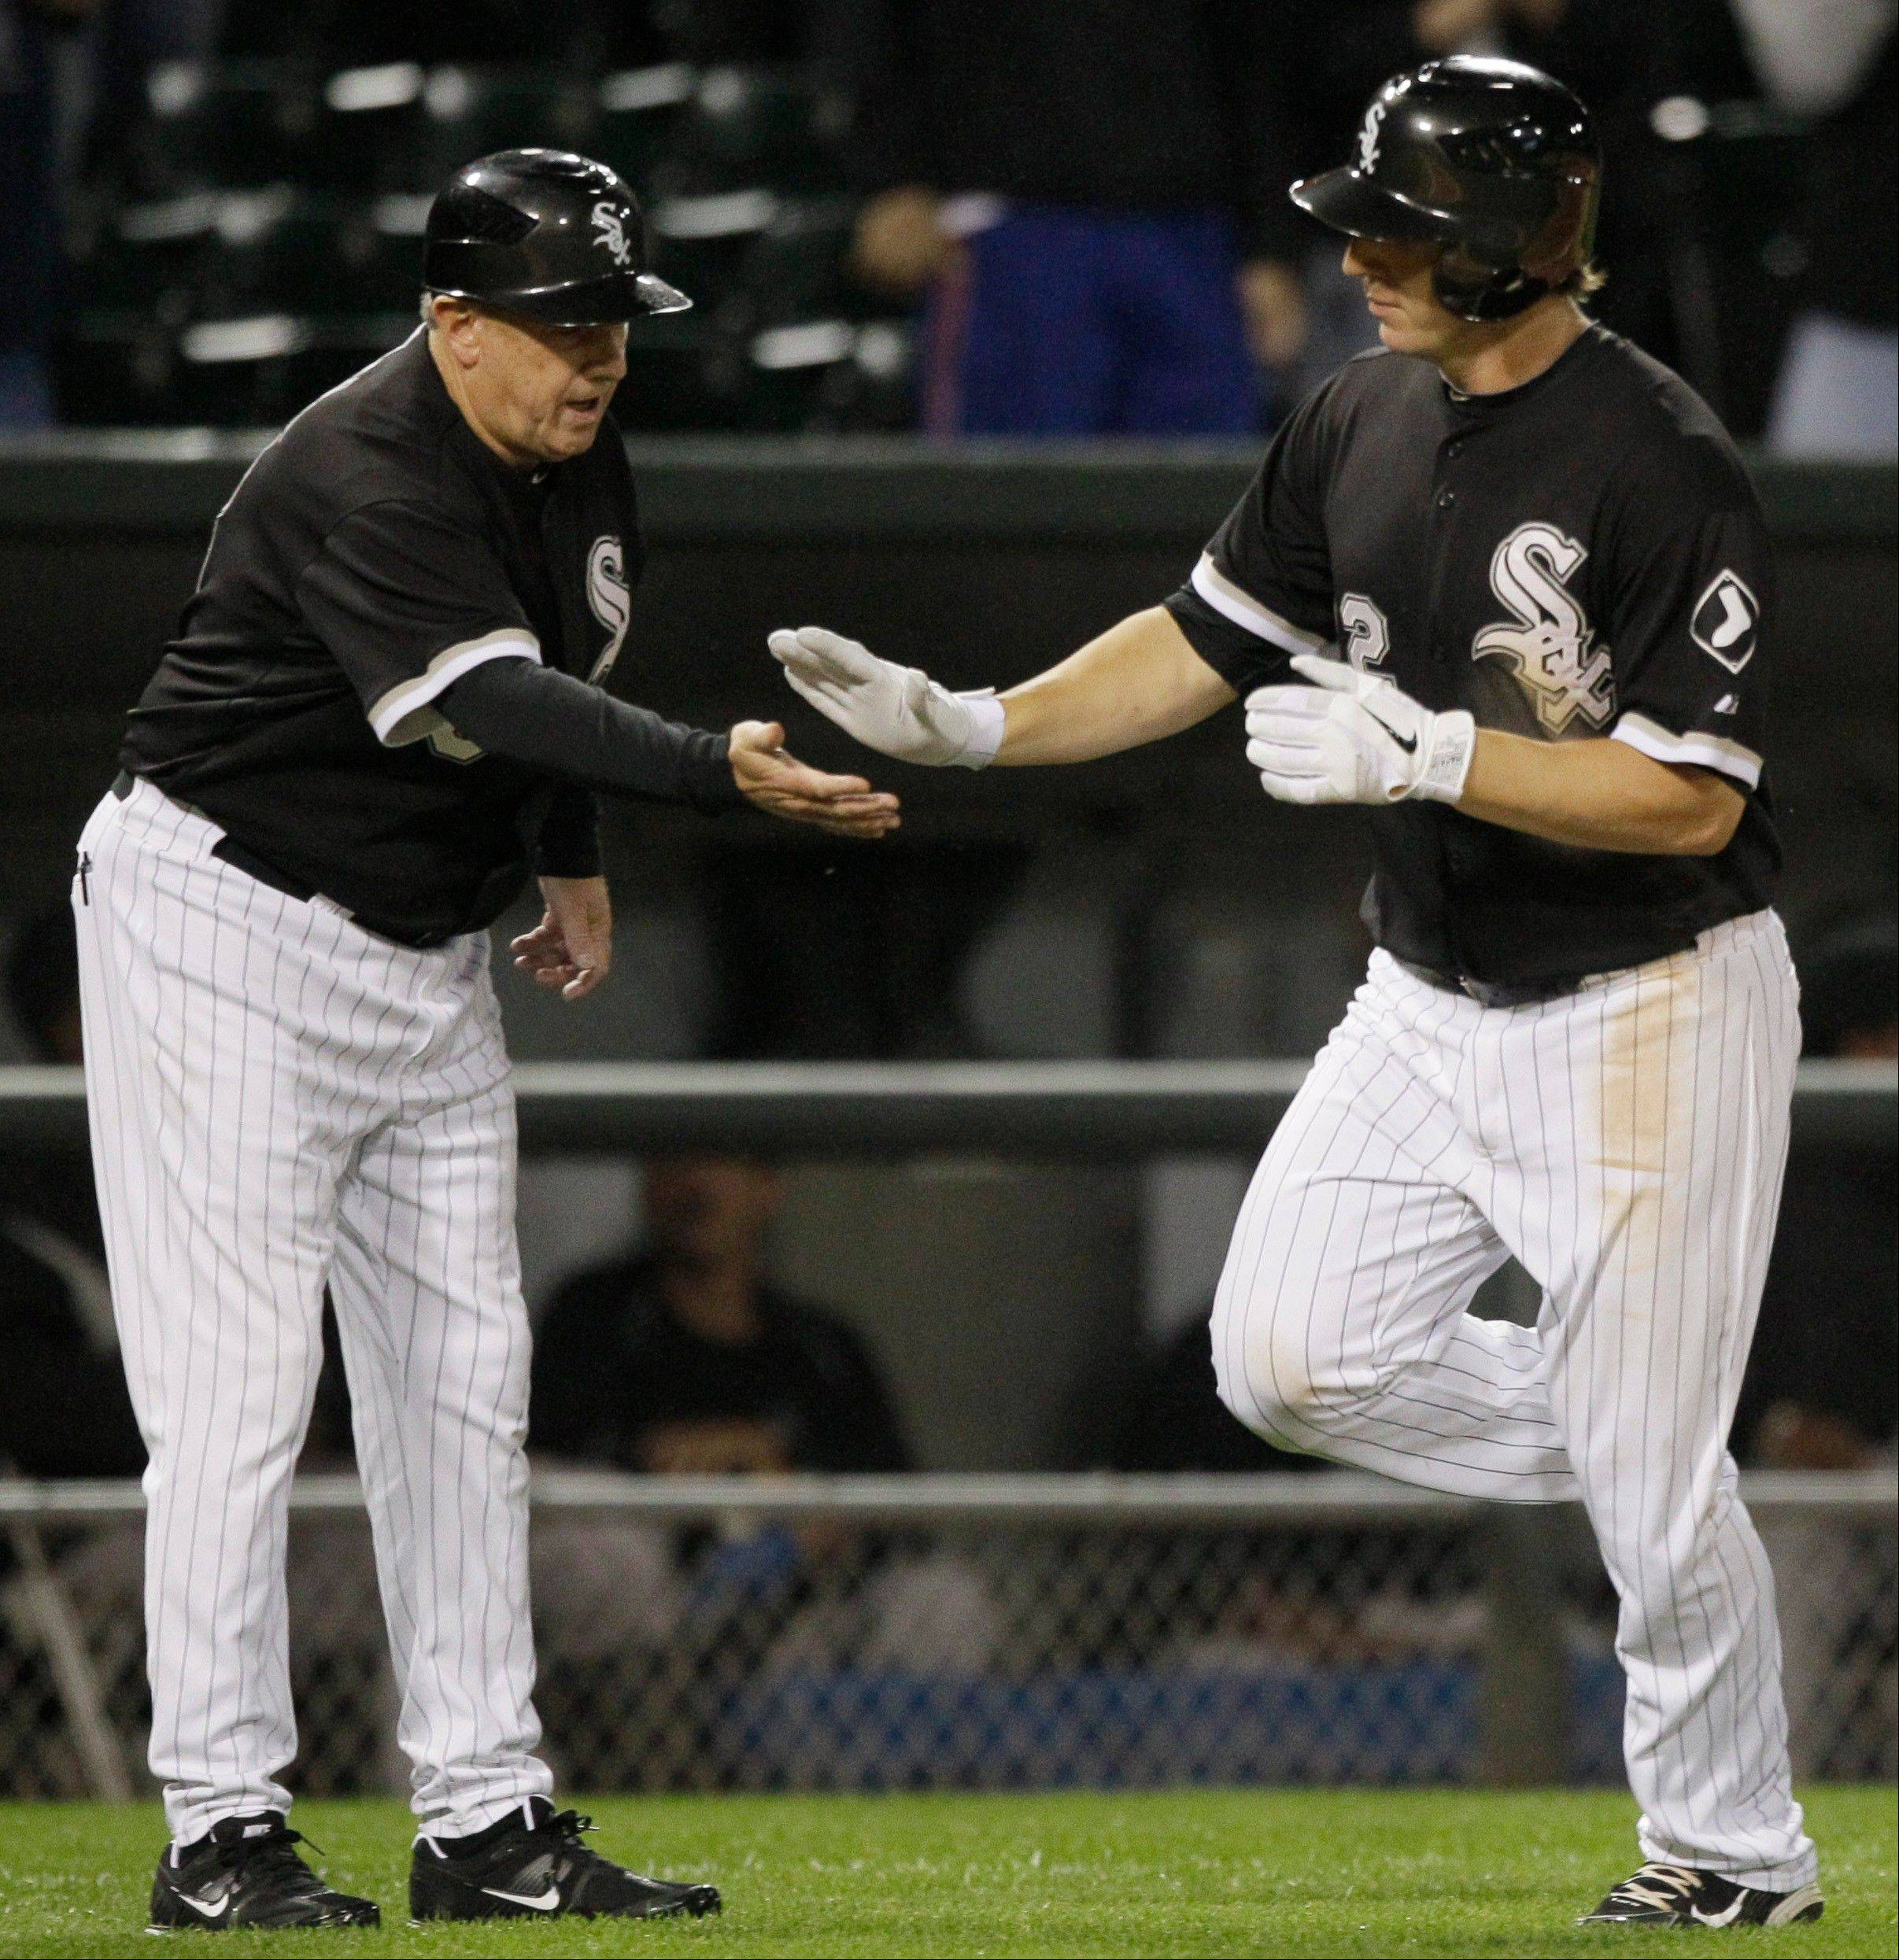 Brent Morel high fives third-base coach Jeff Cox after hitting 1 of his 2 home runs Thursday against Cleveland.